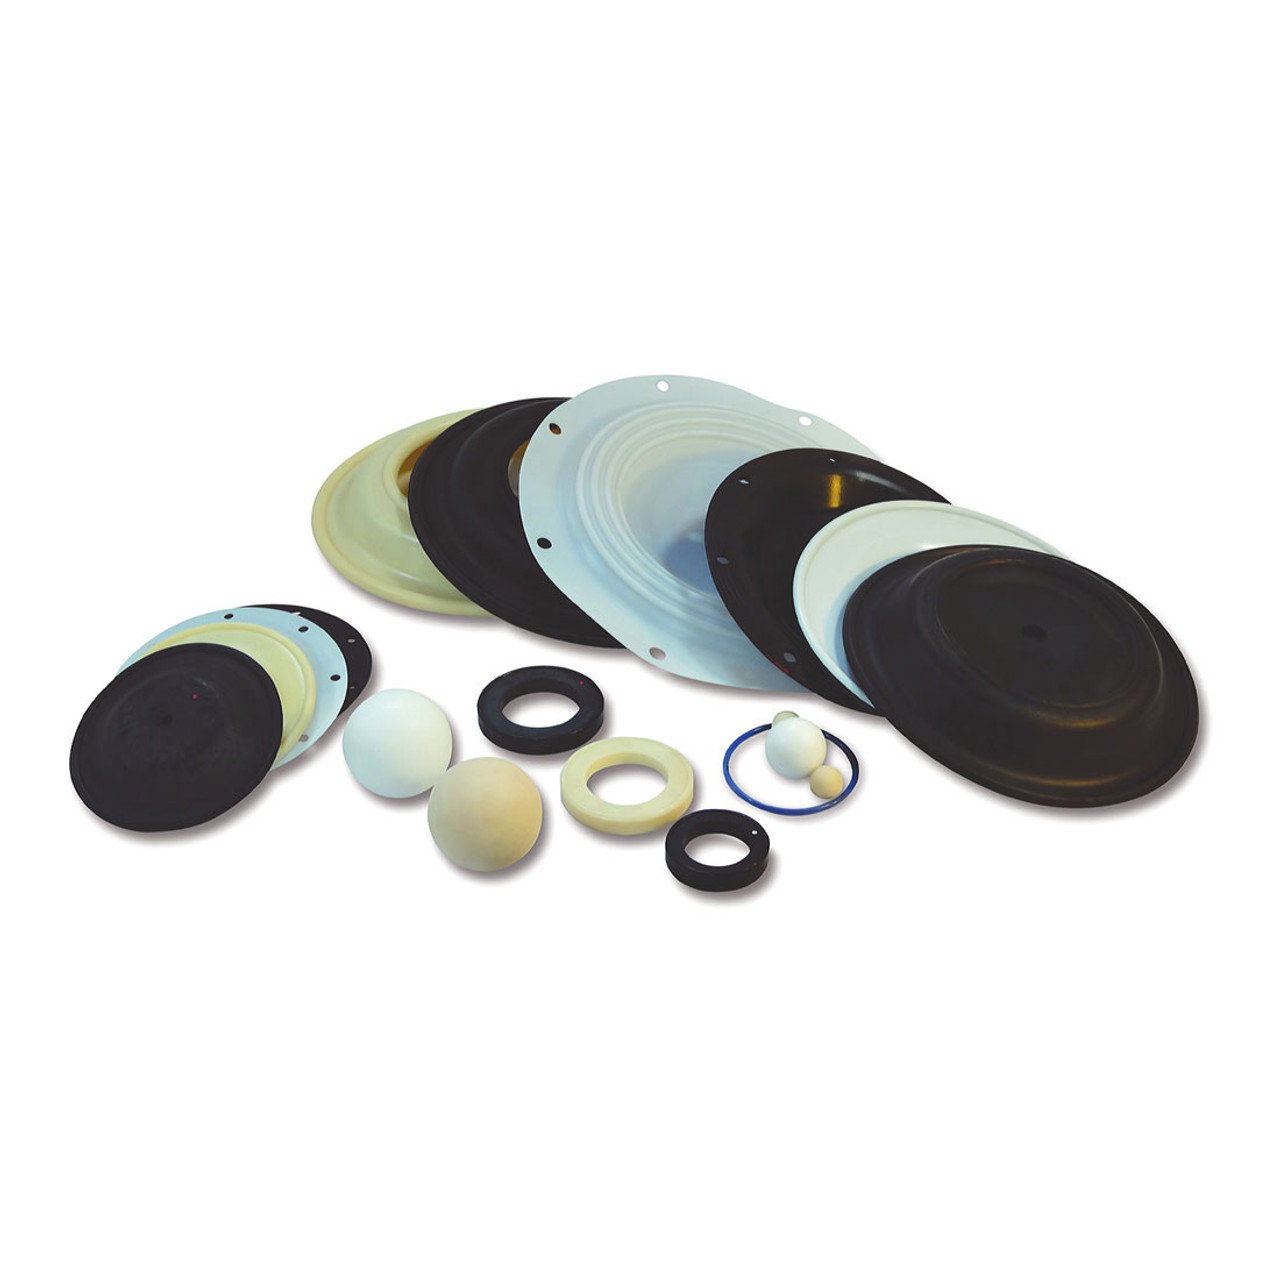 Buna n elastomer repair kits for wilden 1 in px200 metallic pumps buna n elastomer repair kits for wilden 1 in px200 metallic pumps john m ellsworth co inc ccuart Image collections